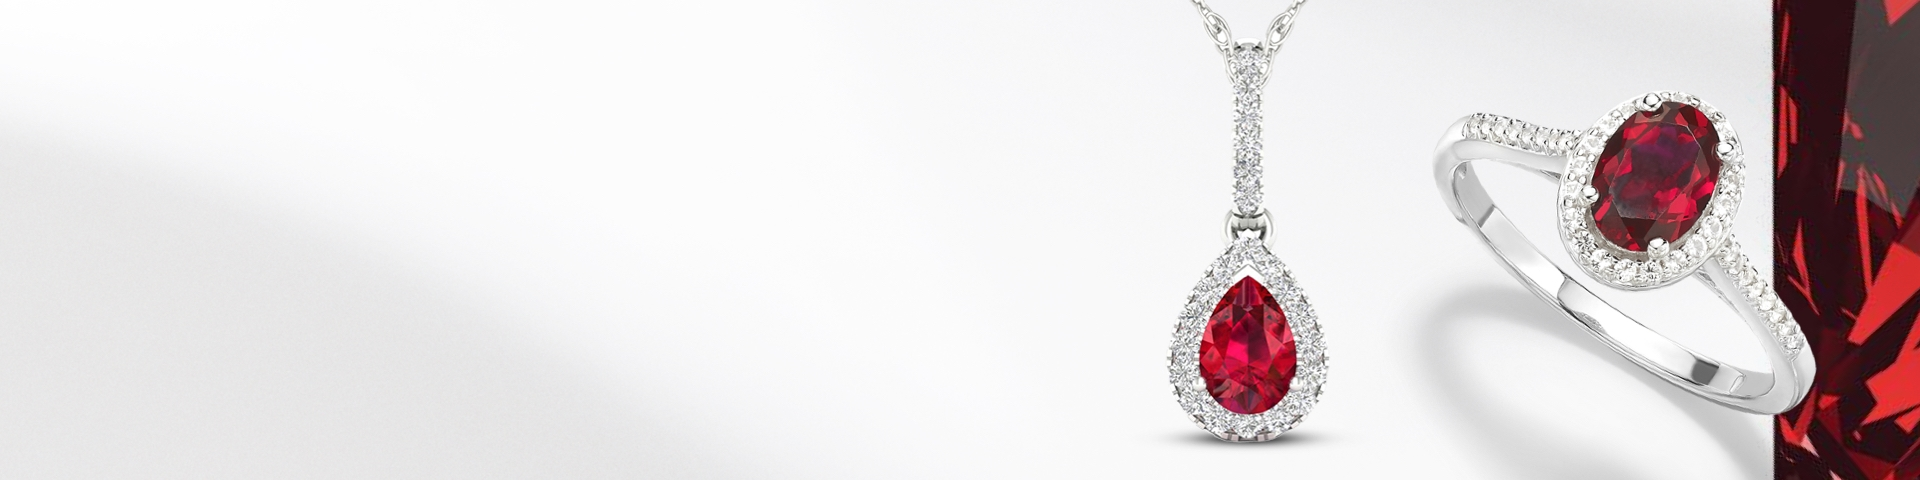 Ruby ring and necklace set in white gold with diamond halos on a white bckground and red gemstone texture.